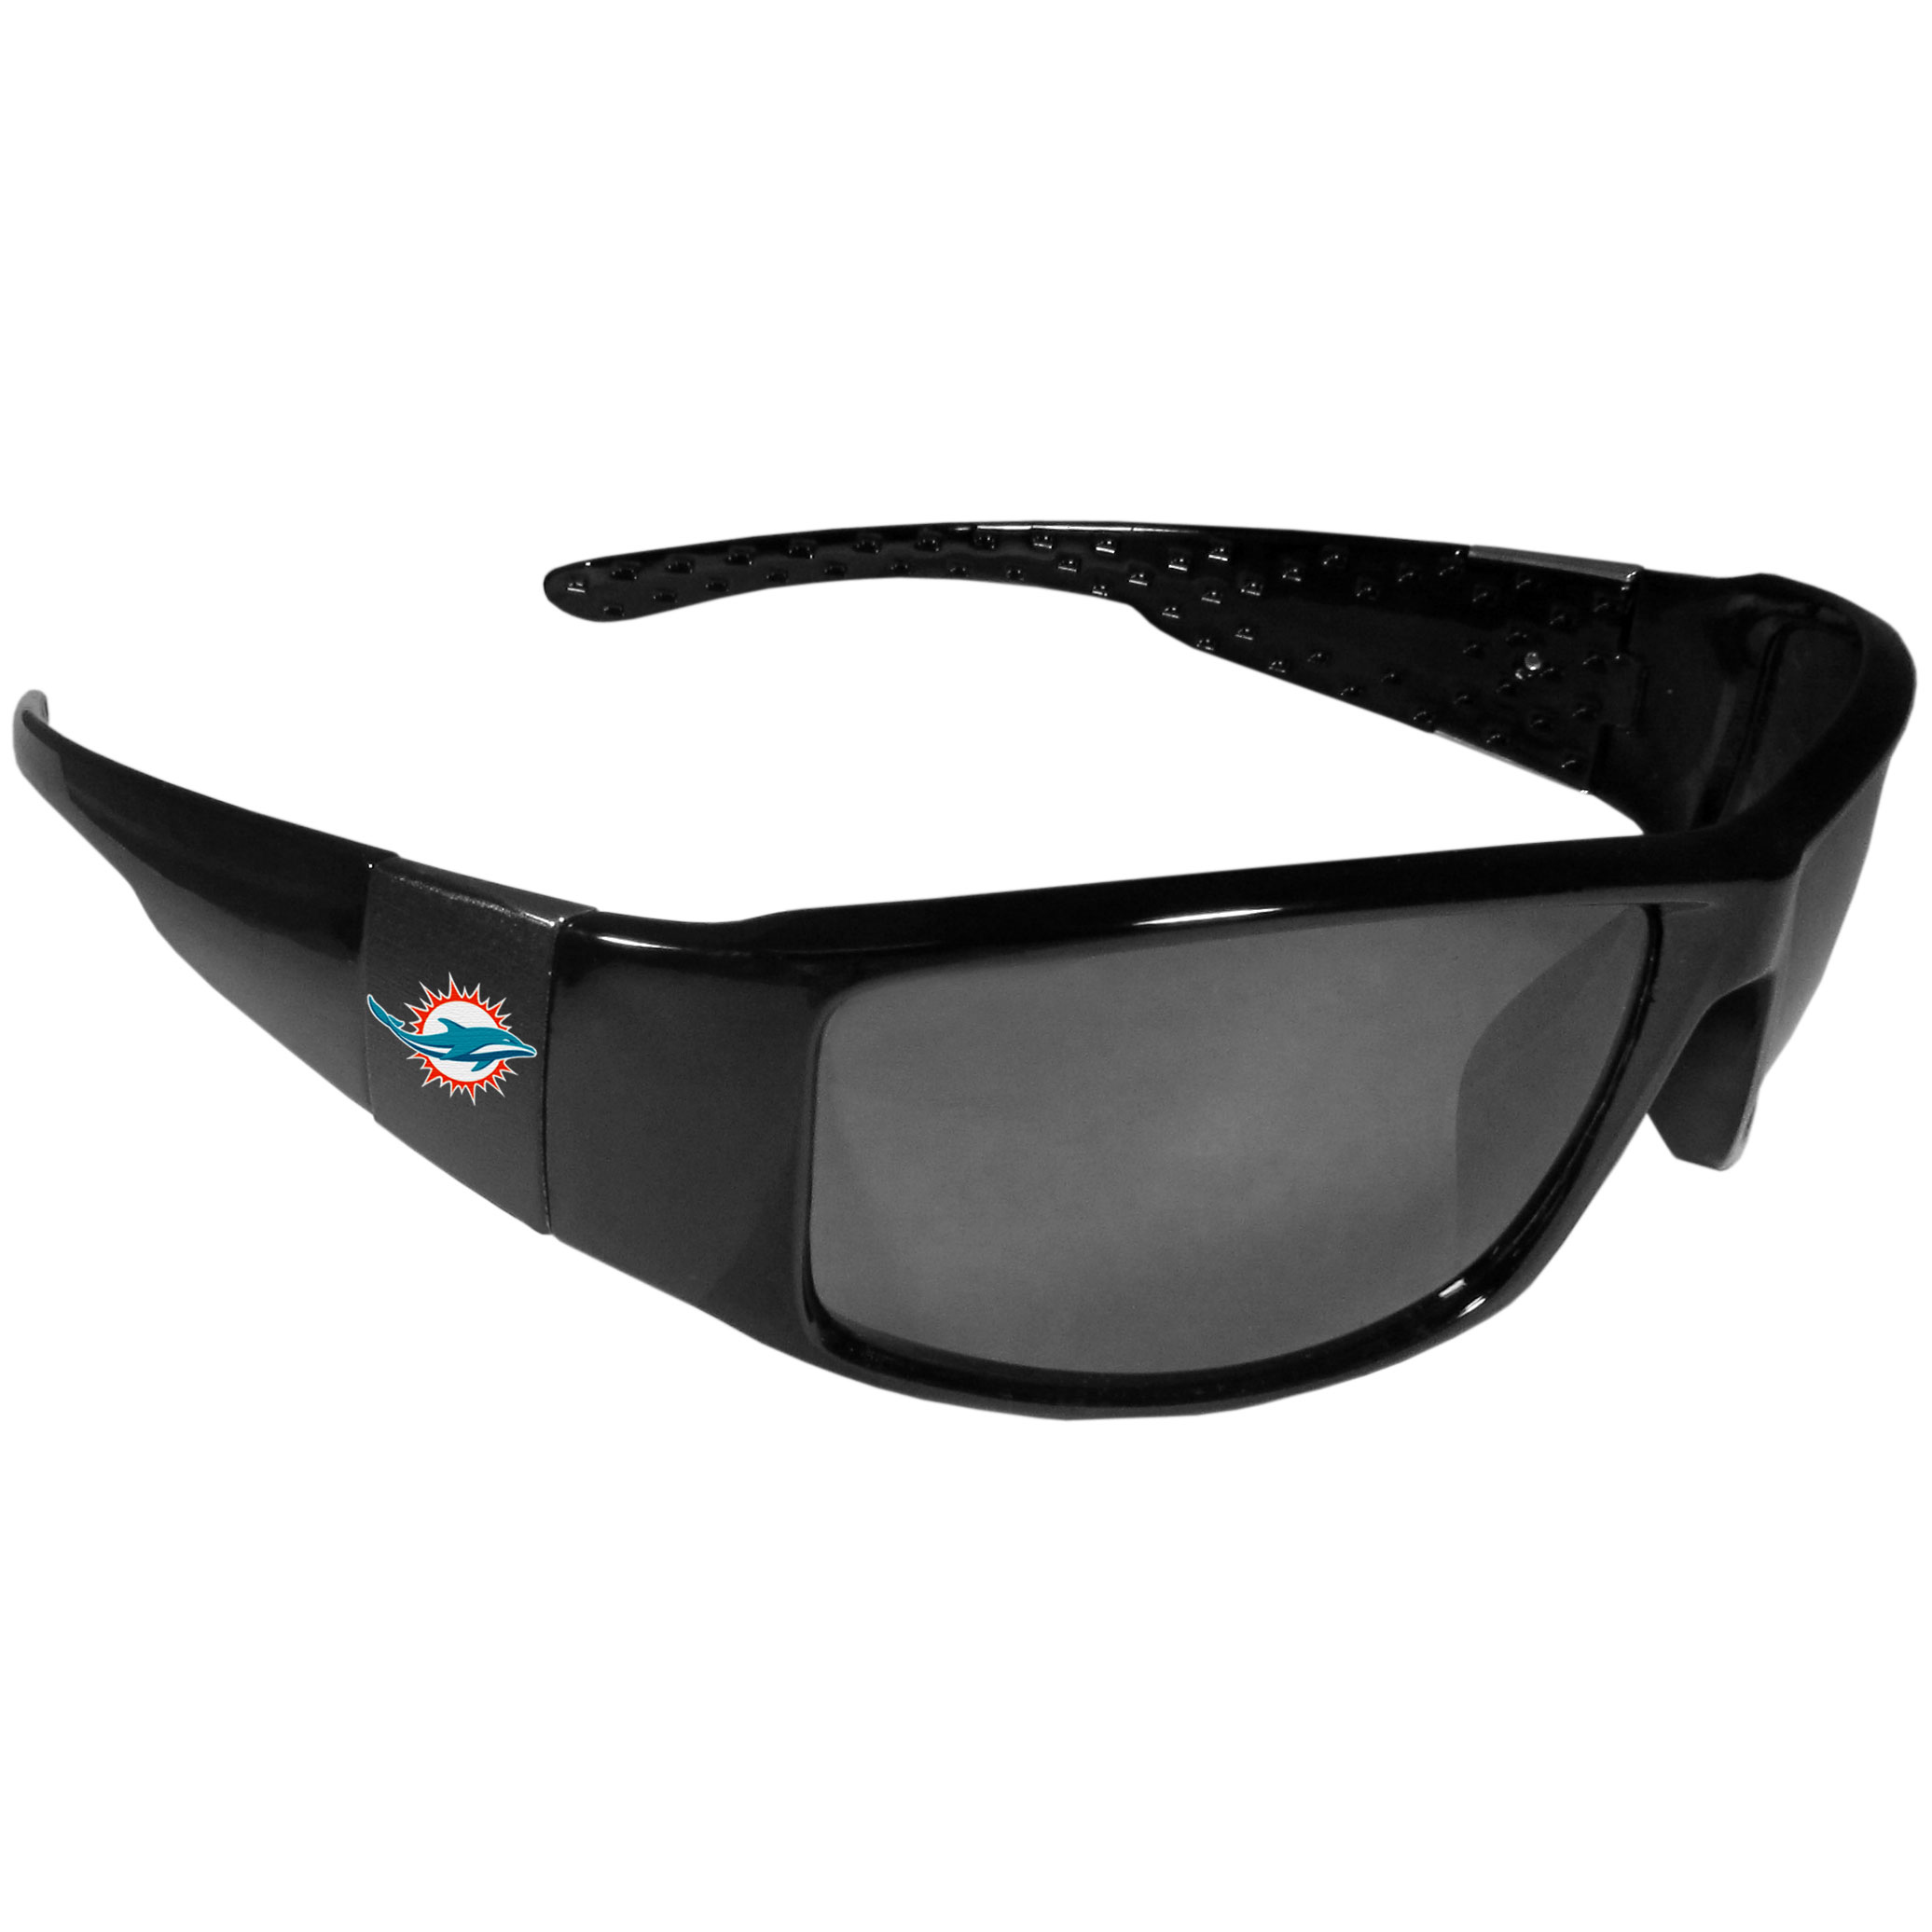 Miami Dolphins Black Wrap Sunglasses - These designer inspired frames have a sleek look in all black with  Miami Dolphins shields on each arm with a printed logo. The shades are perfect for any outdoor activity like; golfing, driving, hiking, fishing or cheering on the team at a tailgating event or at a home game day BBQ with a lens rating of 100% UVA/UVB for maximum UV protection. The high-quality frames are as durable as they are fashionable and with their classic look they are the perfect fan accessory that can be worn everyday for every occasion.